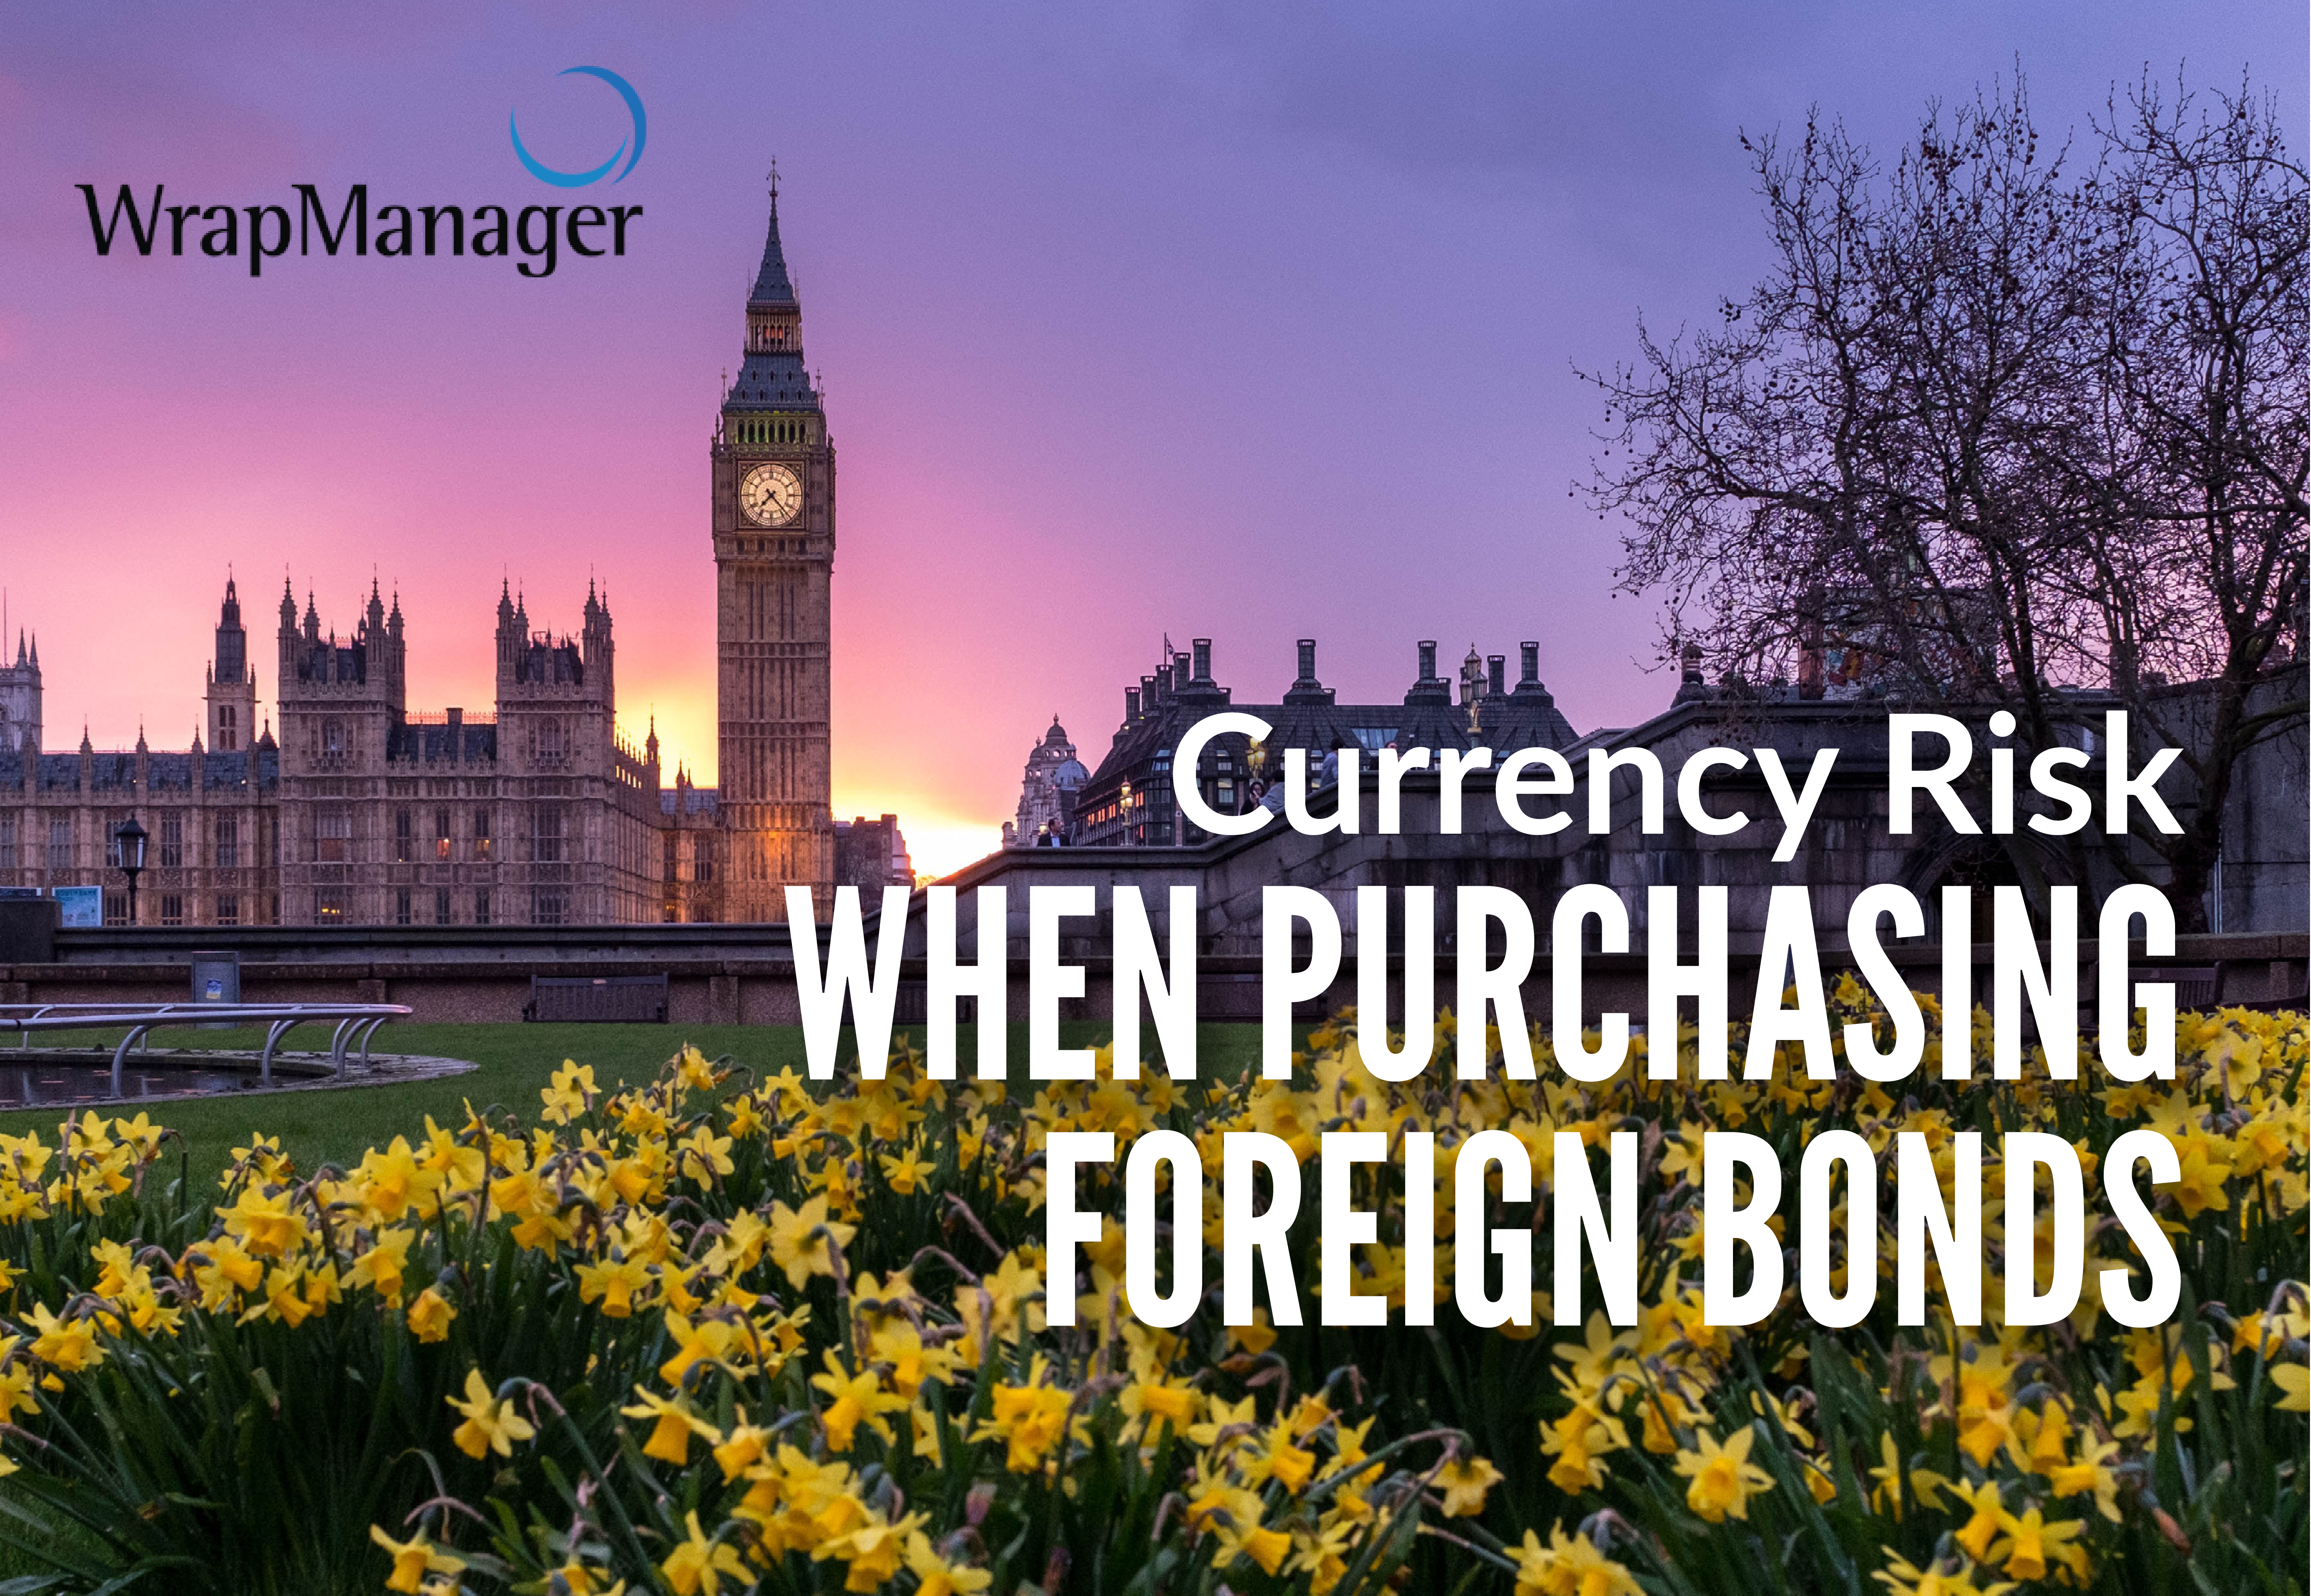 Currency Risk in Purchasing Foreign Bonds